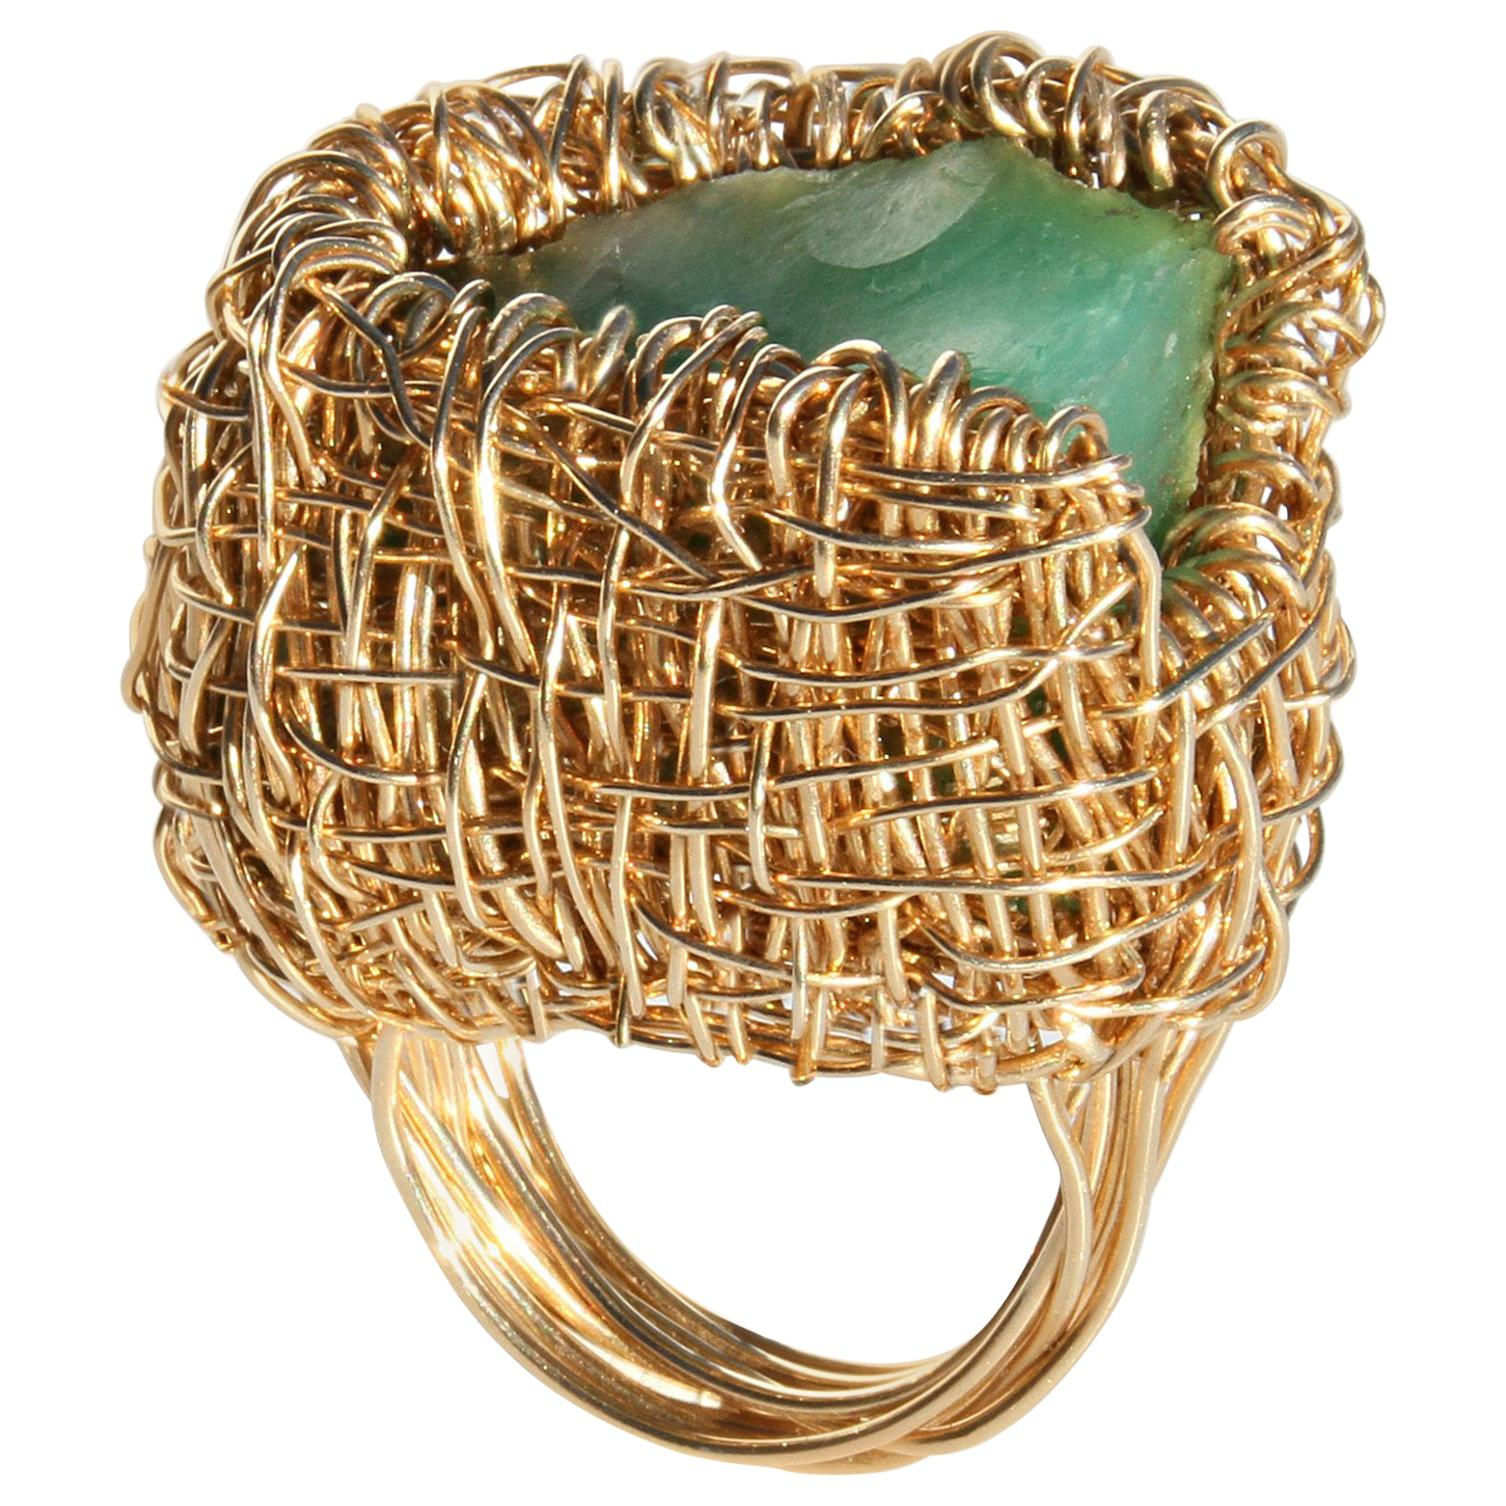 Raw Chrysoprase in Gold Woven Statement Cocktail Ring by Sheila Westera in Stock